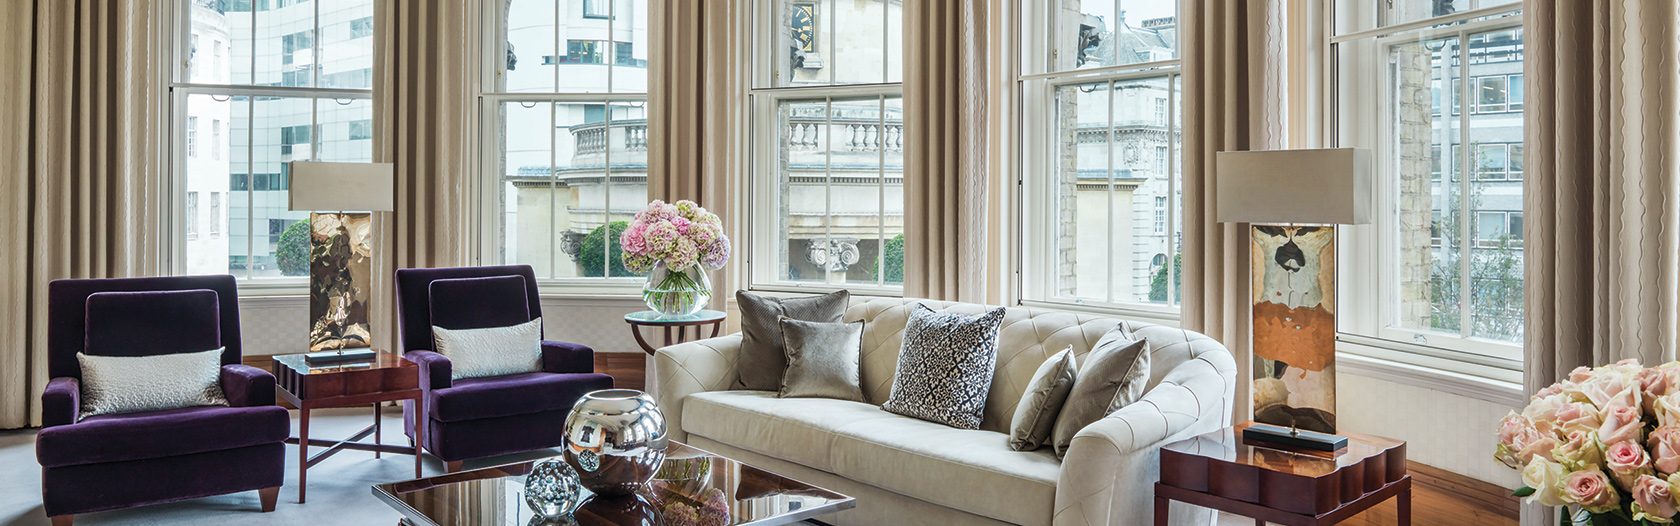 London best hotels: Langham Hotel Club homes in Texas The most sophisticated homes in Texas London Best Hotels Langham Hotel Club Featured homes in Texas The most sophisticated homes in Texas London Best Hotels Langham Hotel Club Featured